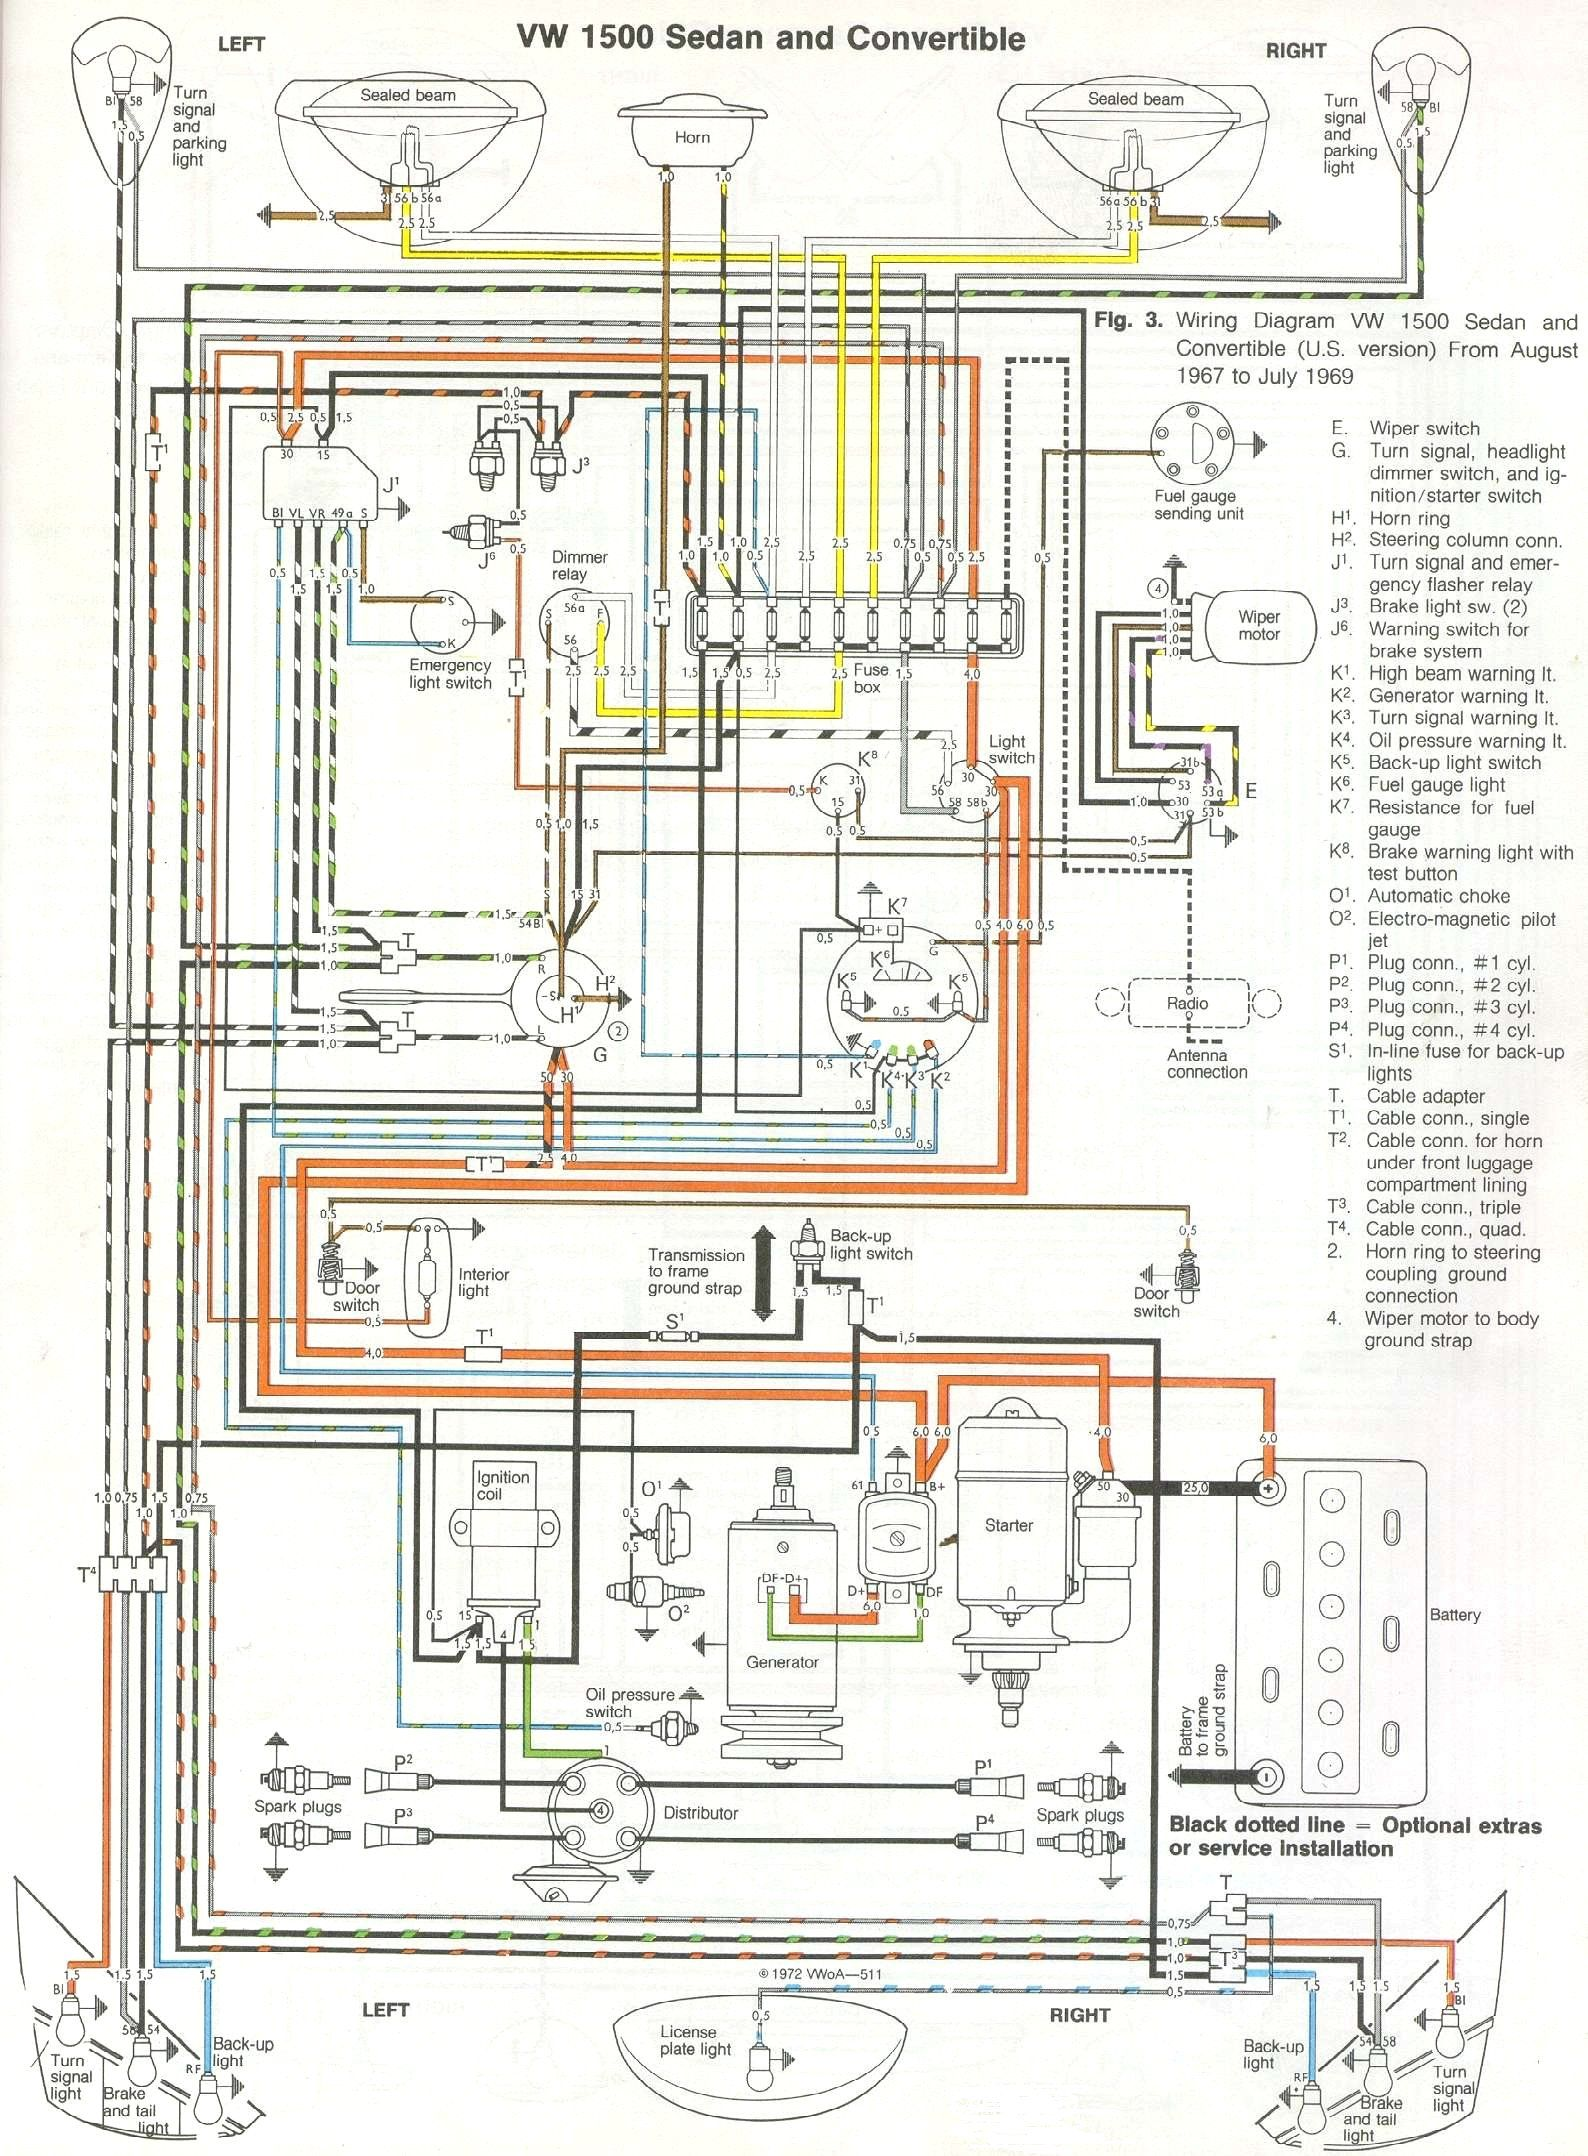 1968-69 Beetle Wiring Diagram (USA) | TheGoldenBug.com Vw Baja Bug